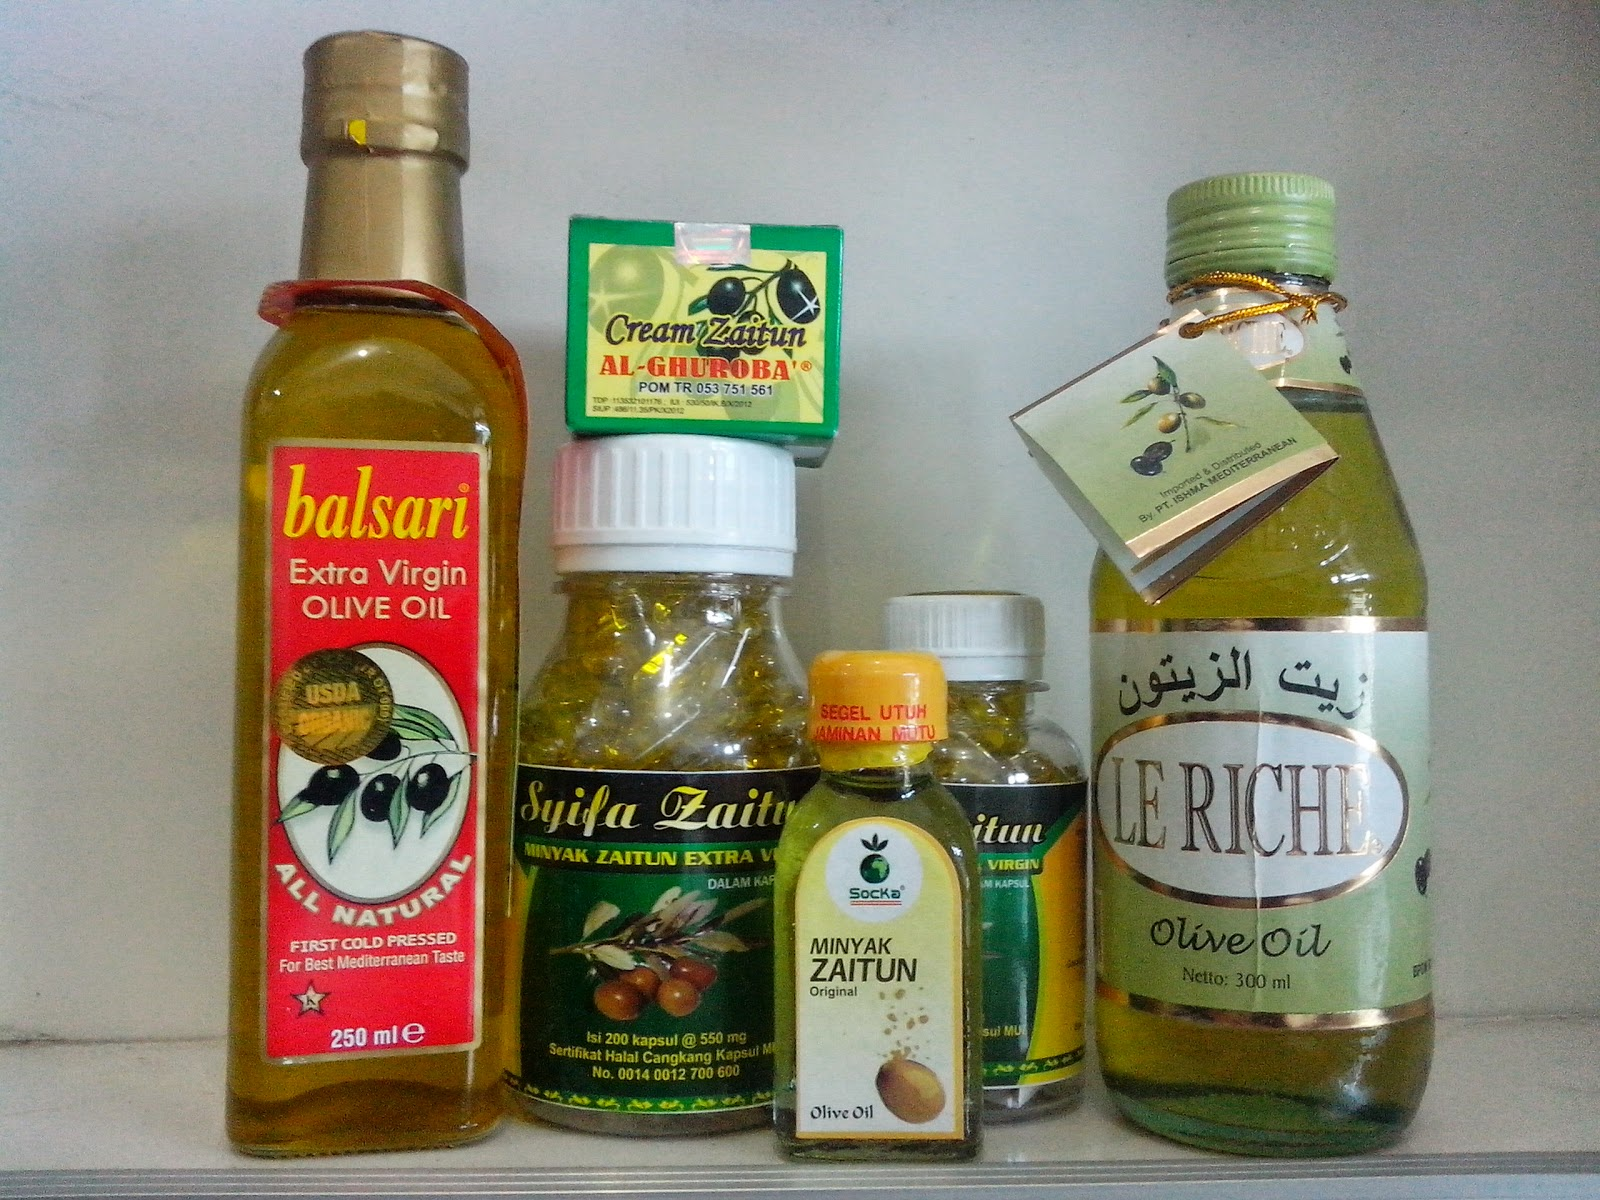 Zaitunfit 60 Kapsul Extra Virgin Olive Oil5 Lihat Daftar Harga Minyak Zaitun Oil Al Ghuroba Ml Borges Light 500 Source Sms Or